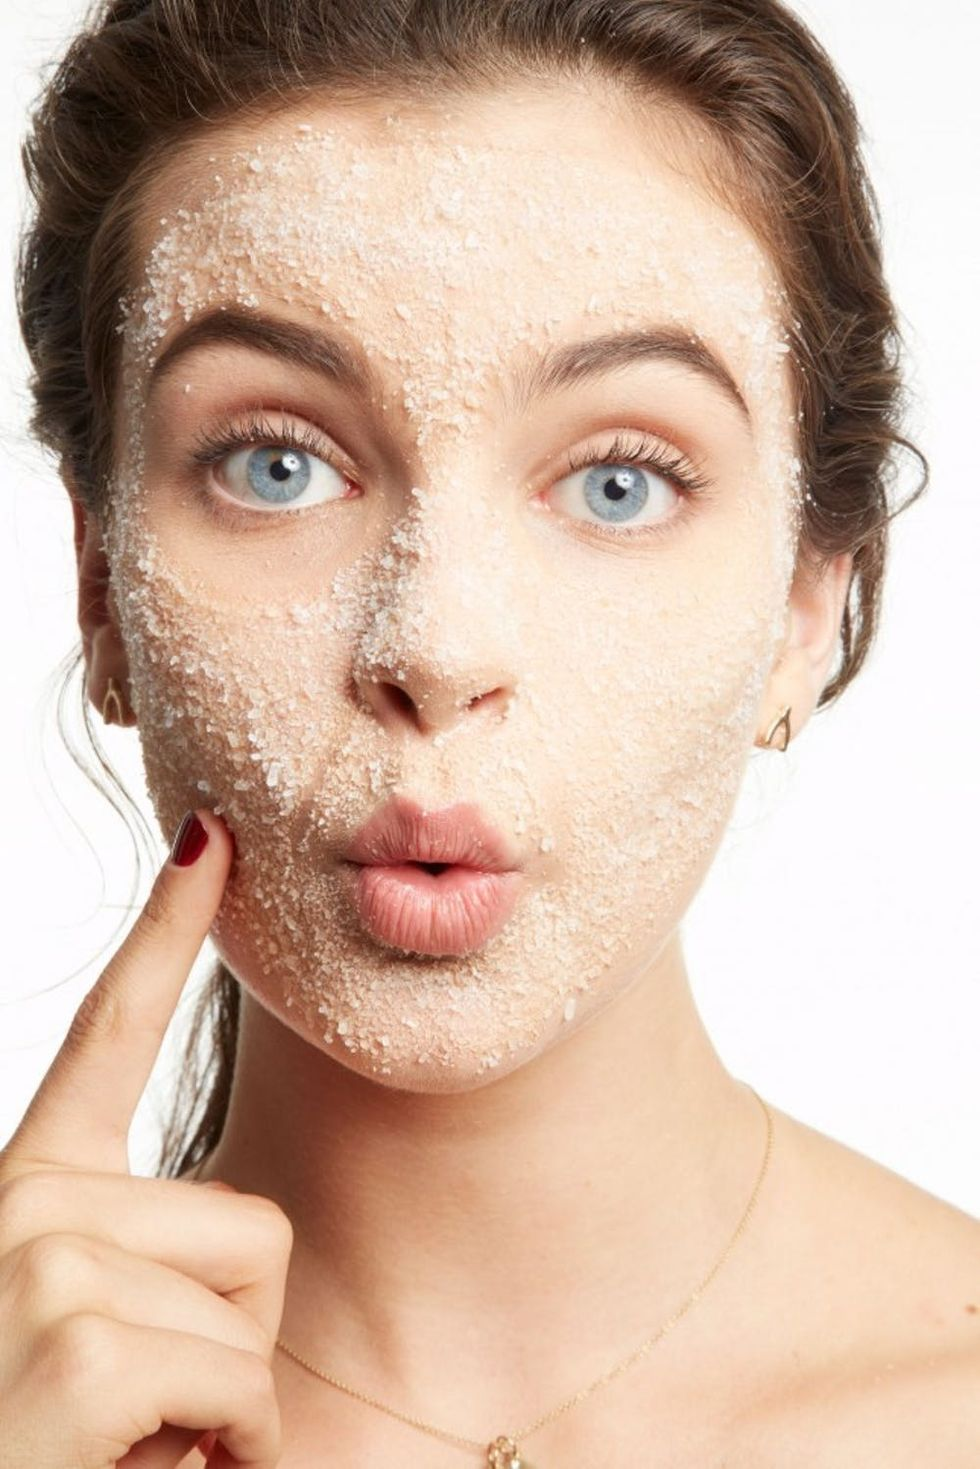 10 Simple Tricks to Get Clear Skin Overnight - Brit + Co